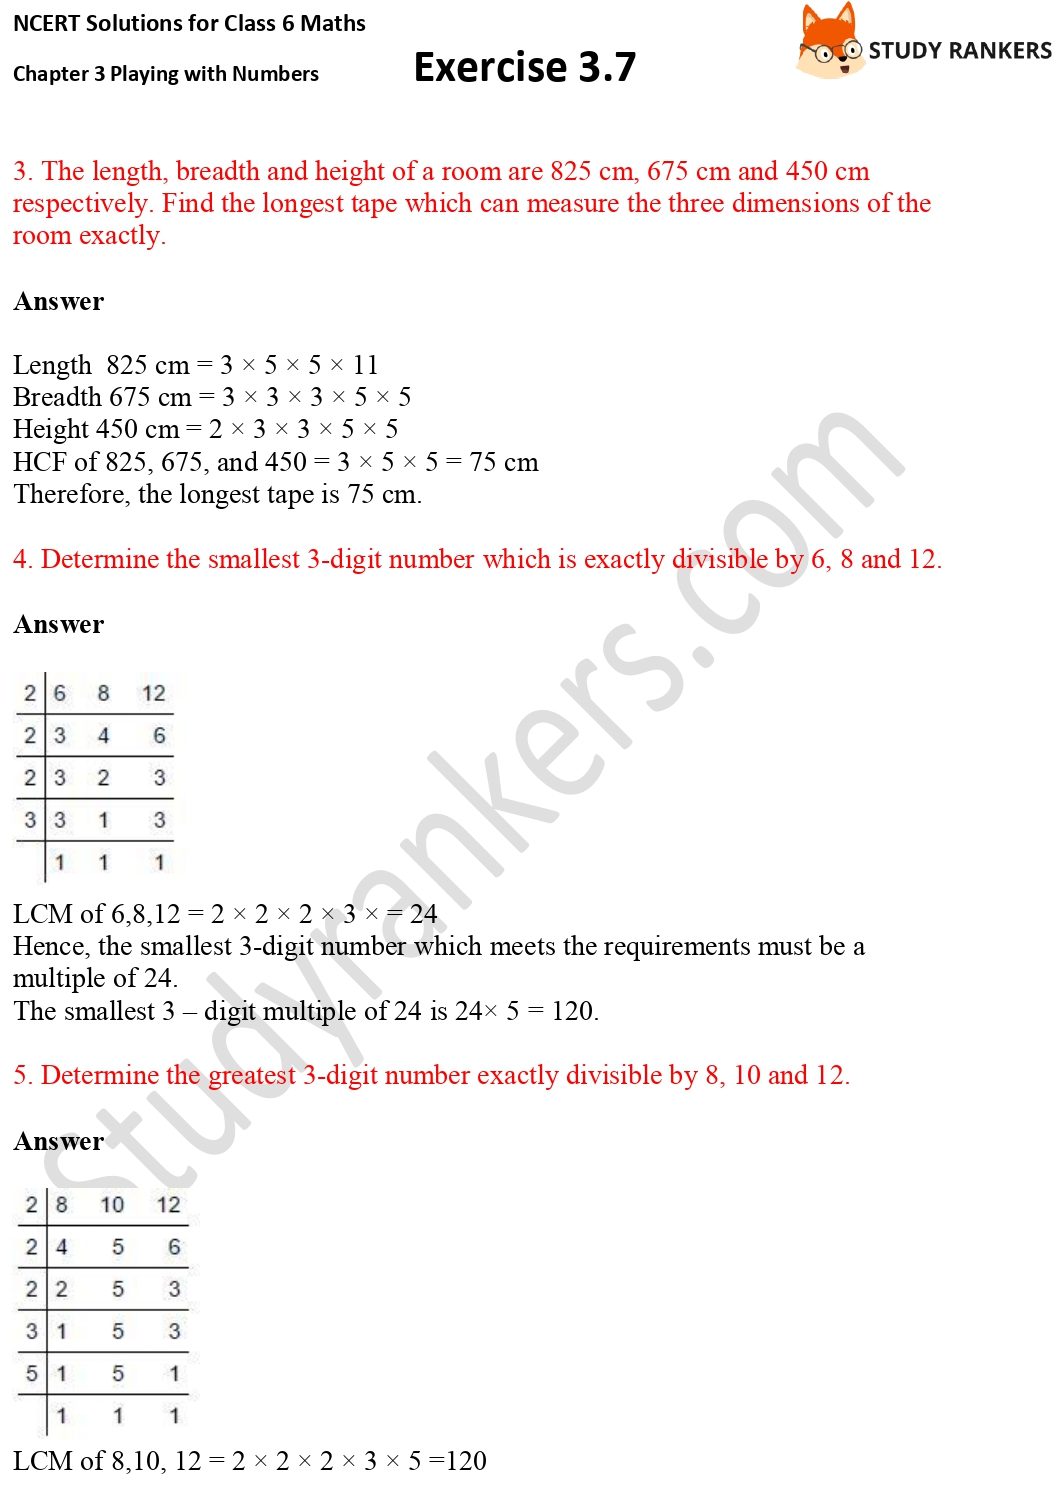 NCERT Solutions for Class 6 Maths Chapter 3 Playing with Numbers Exercise 3.7 Part 2